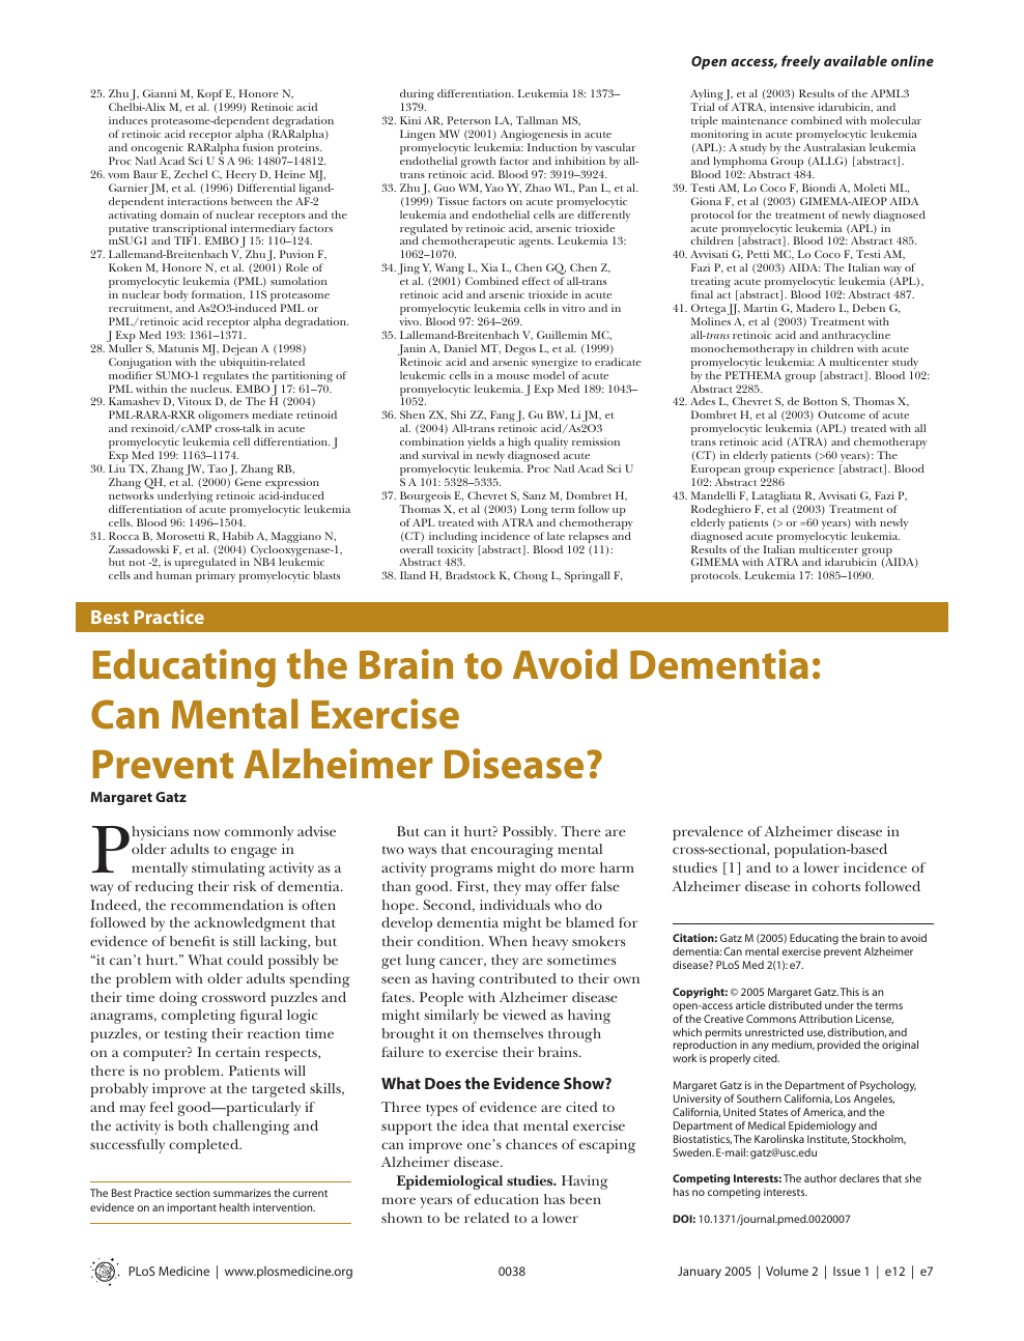 010 Alzheimers Disease Research Paper Topics Stunning Alzheimer's Ideas Large